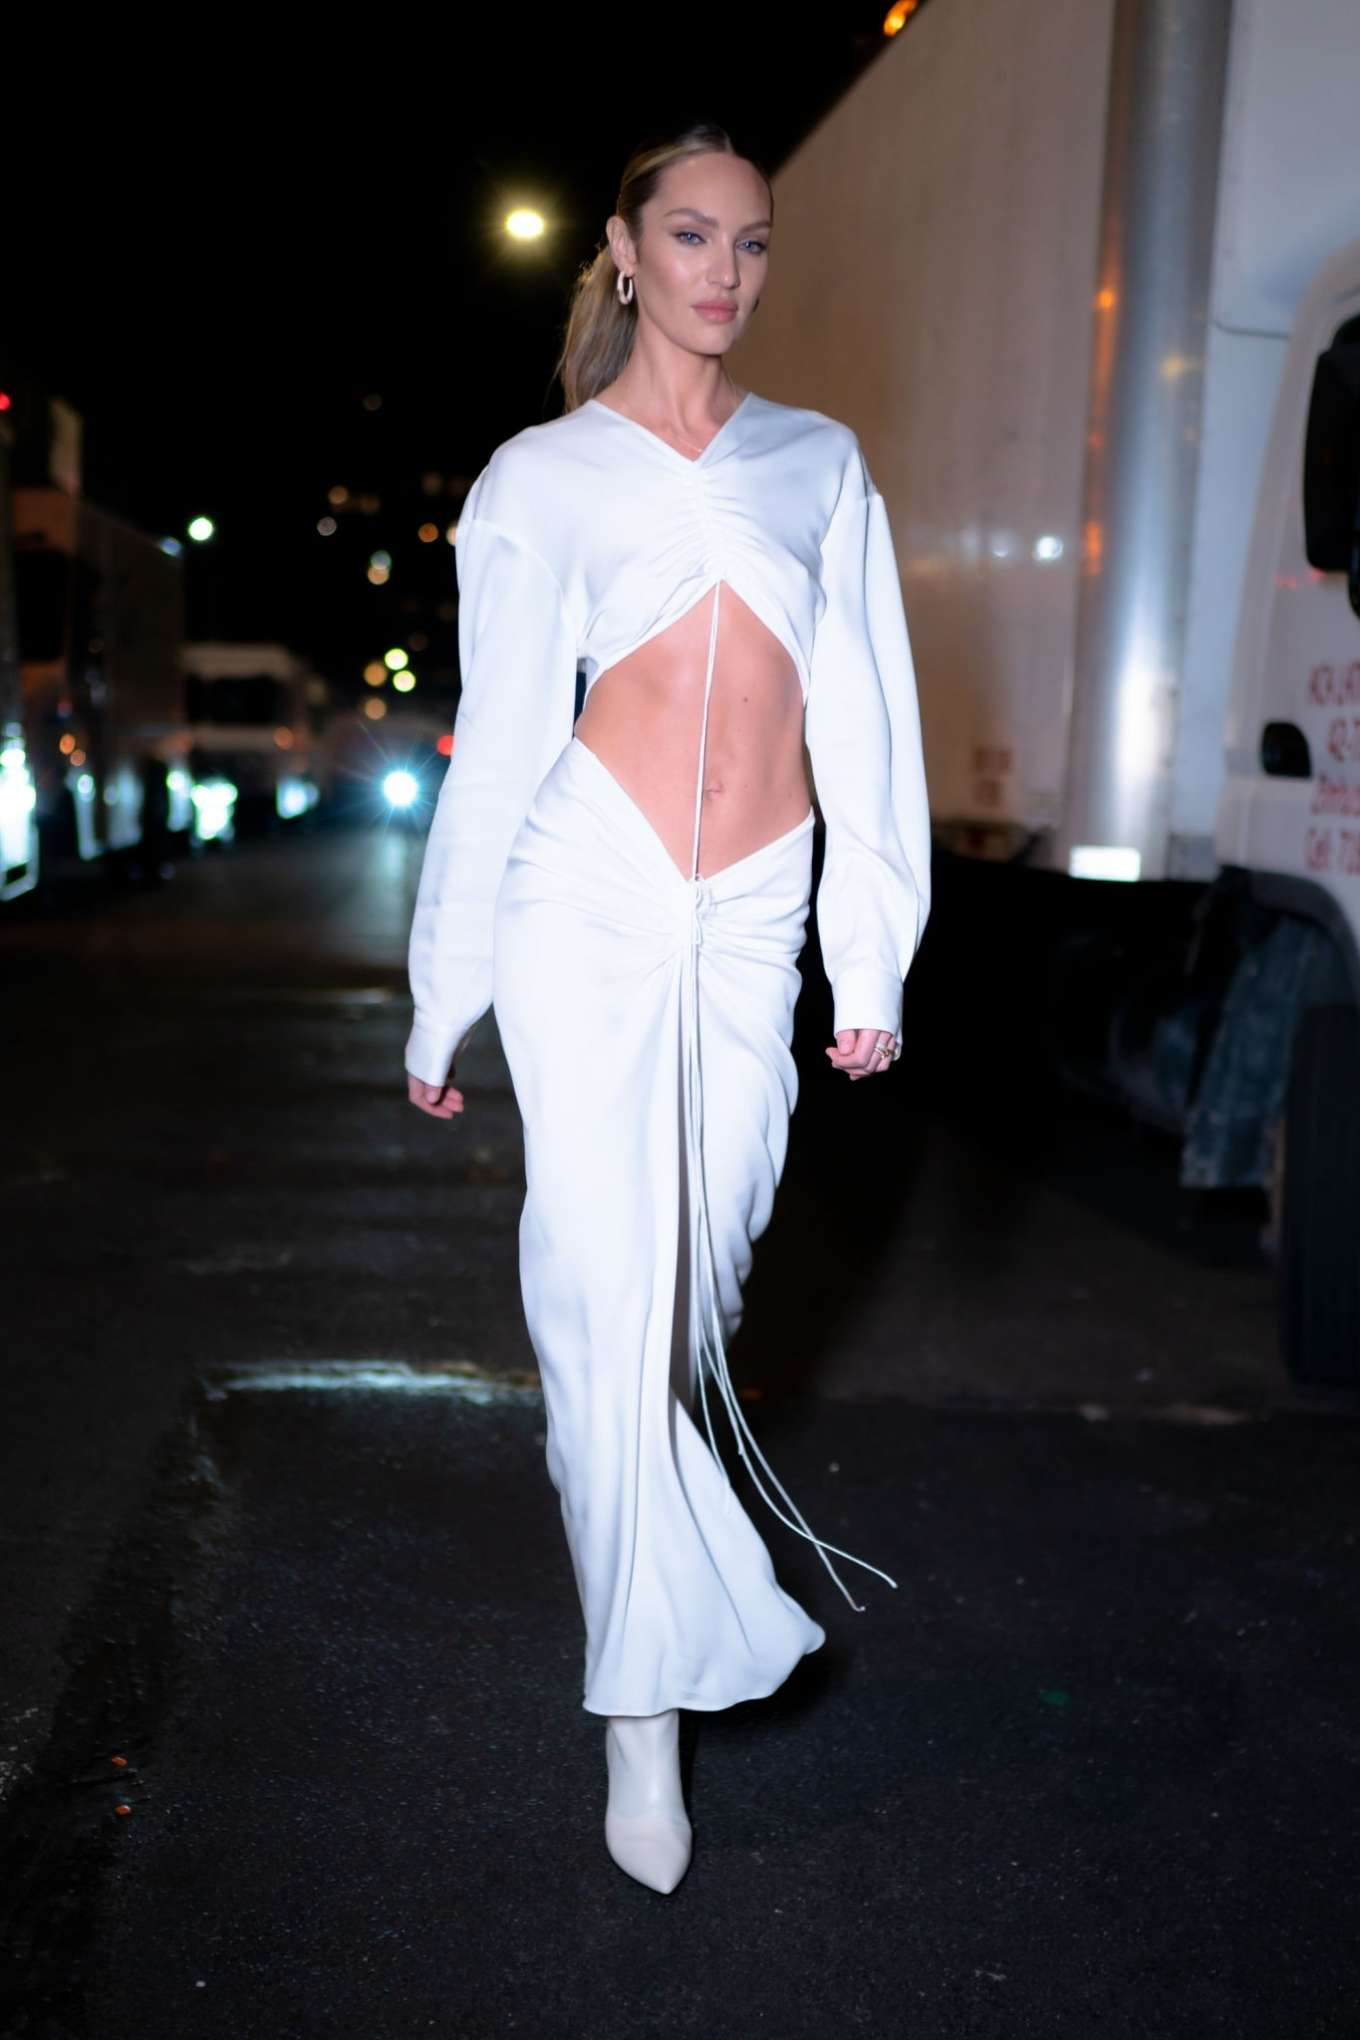 Candice Swanepoel 2019 : Candice Swanepoel in White Dress – Out in NYC-01